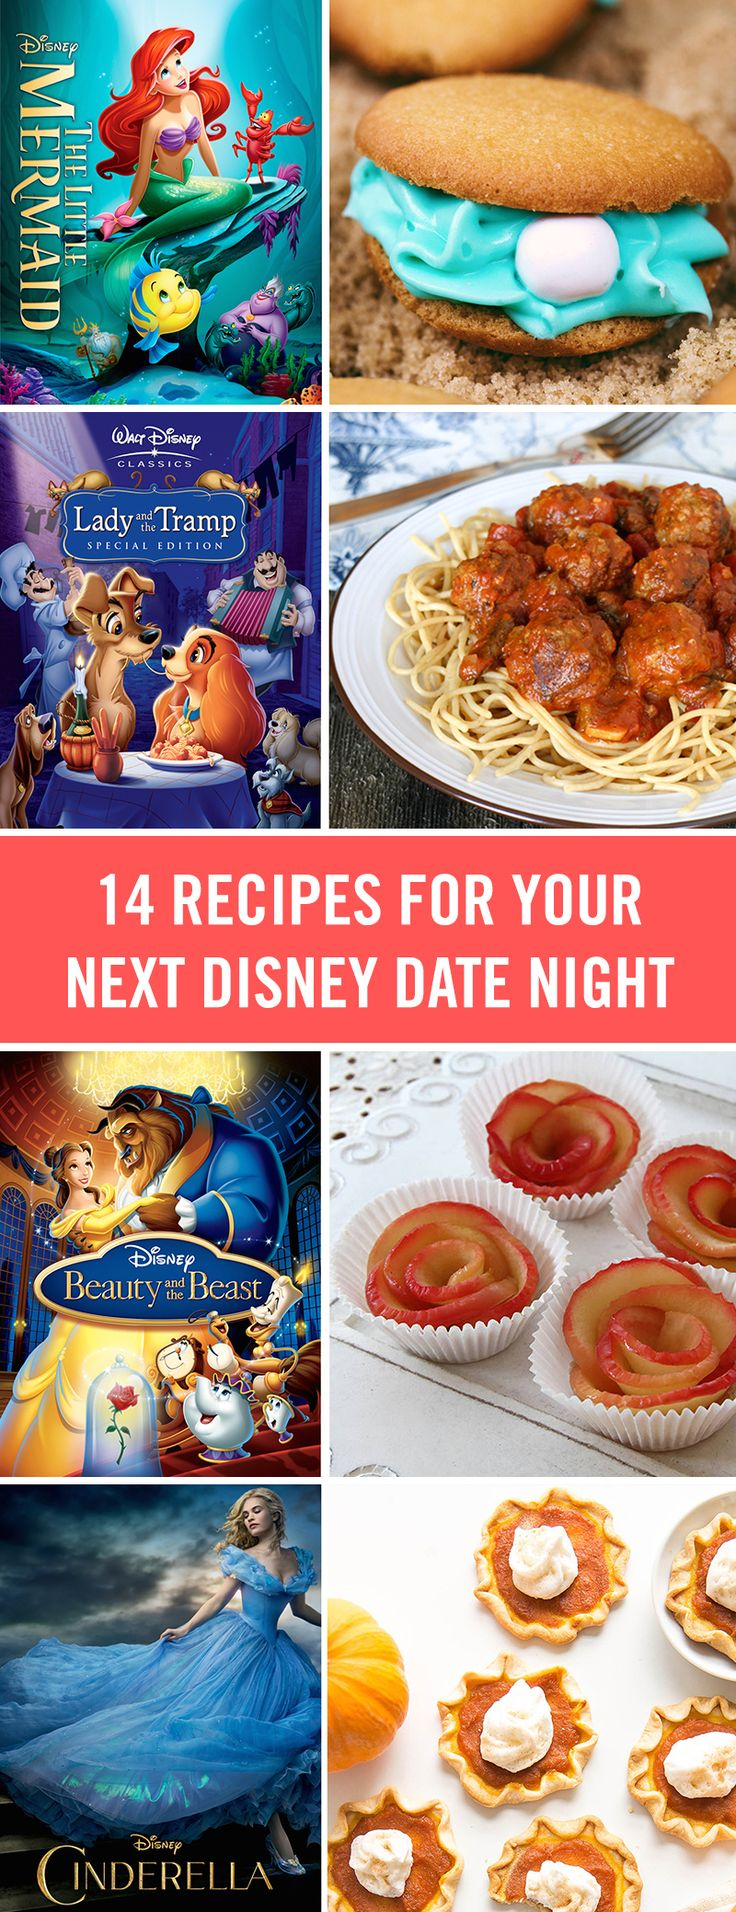 "Plan the perfect ""Bella Notte"" for the whole family (or just for the two of you) with these romantic Disney movies and fun recipes that match. From Lady and the Tramp's spaghetti and meatballs to a magic carpet pizza, these recipes are perfect for Valentine's Day or any Disney date night. ❤"